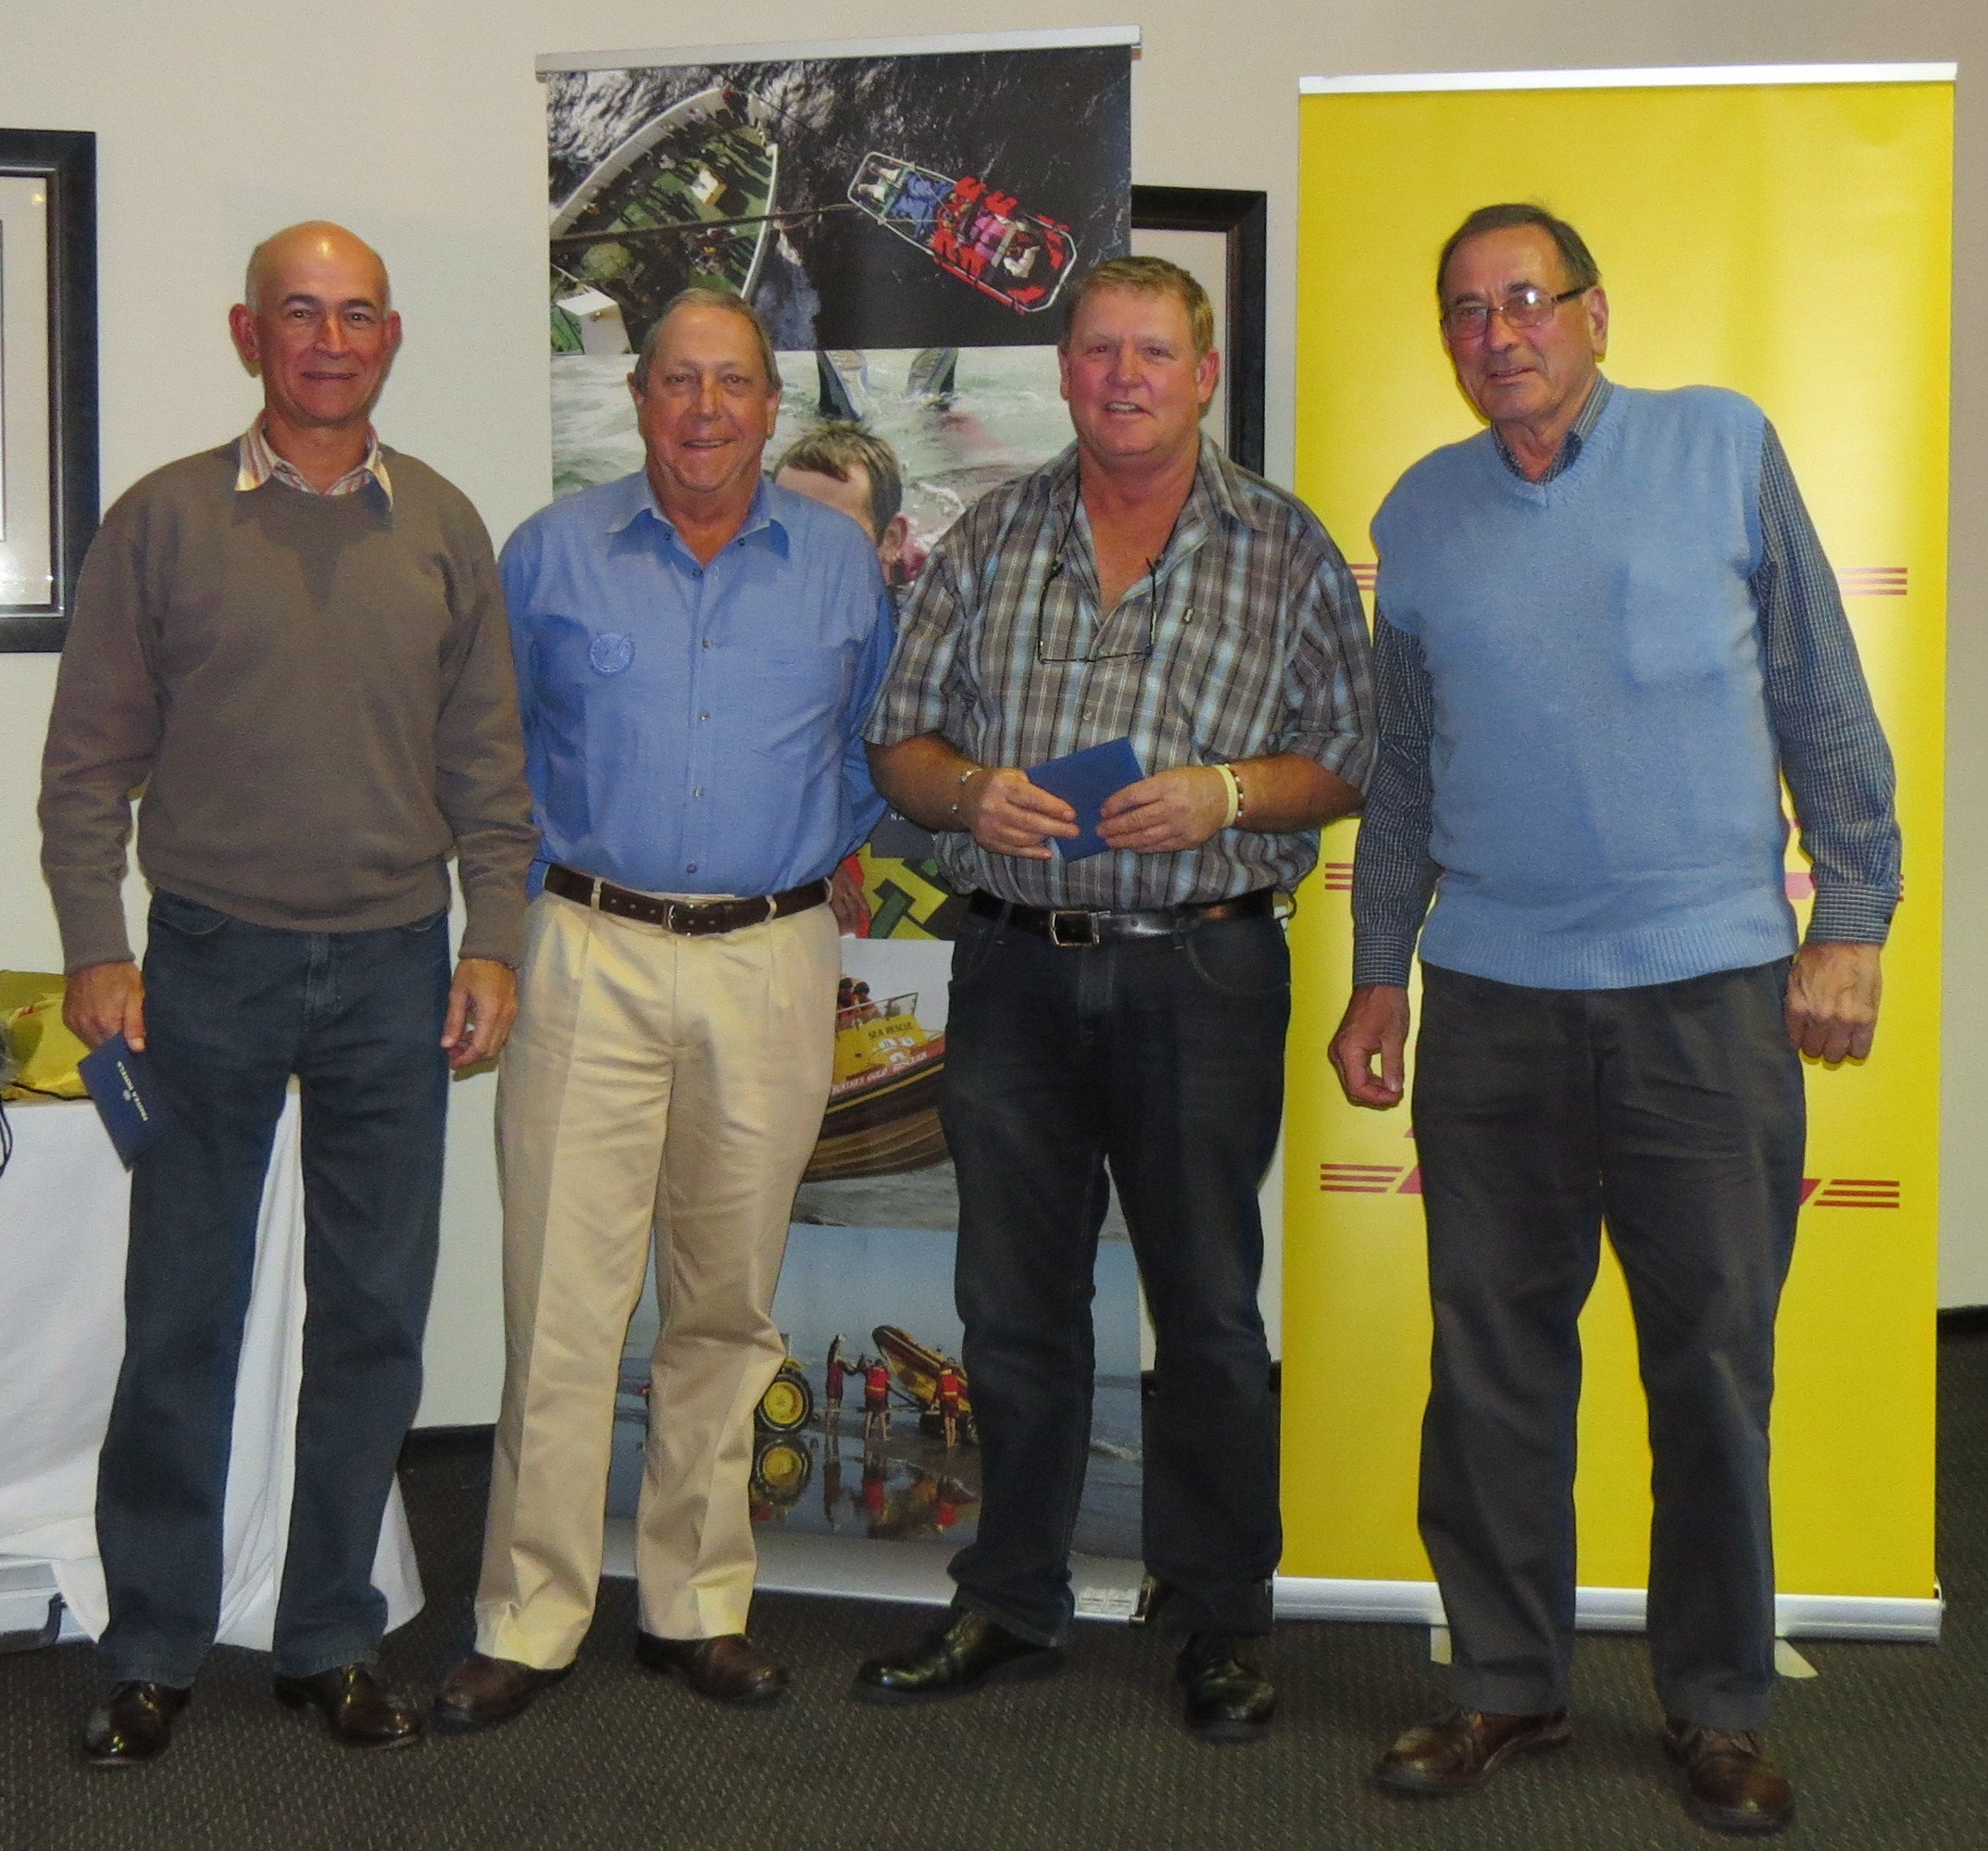 The winners - Neil James, Keith Brown & Chubby Stafford with John Edwards of The Mission to Seafarers